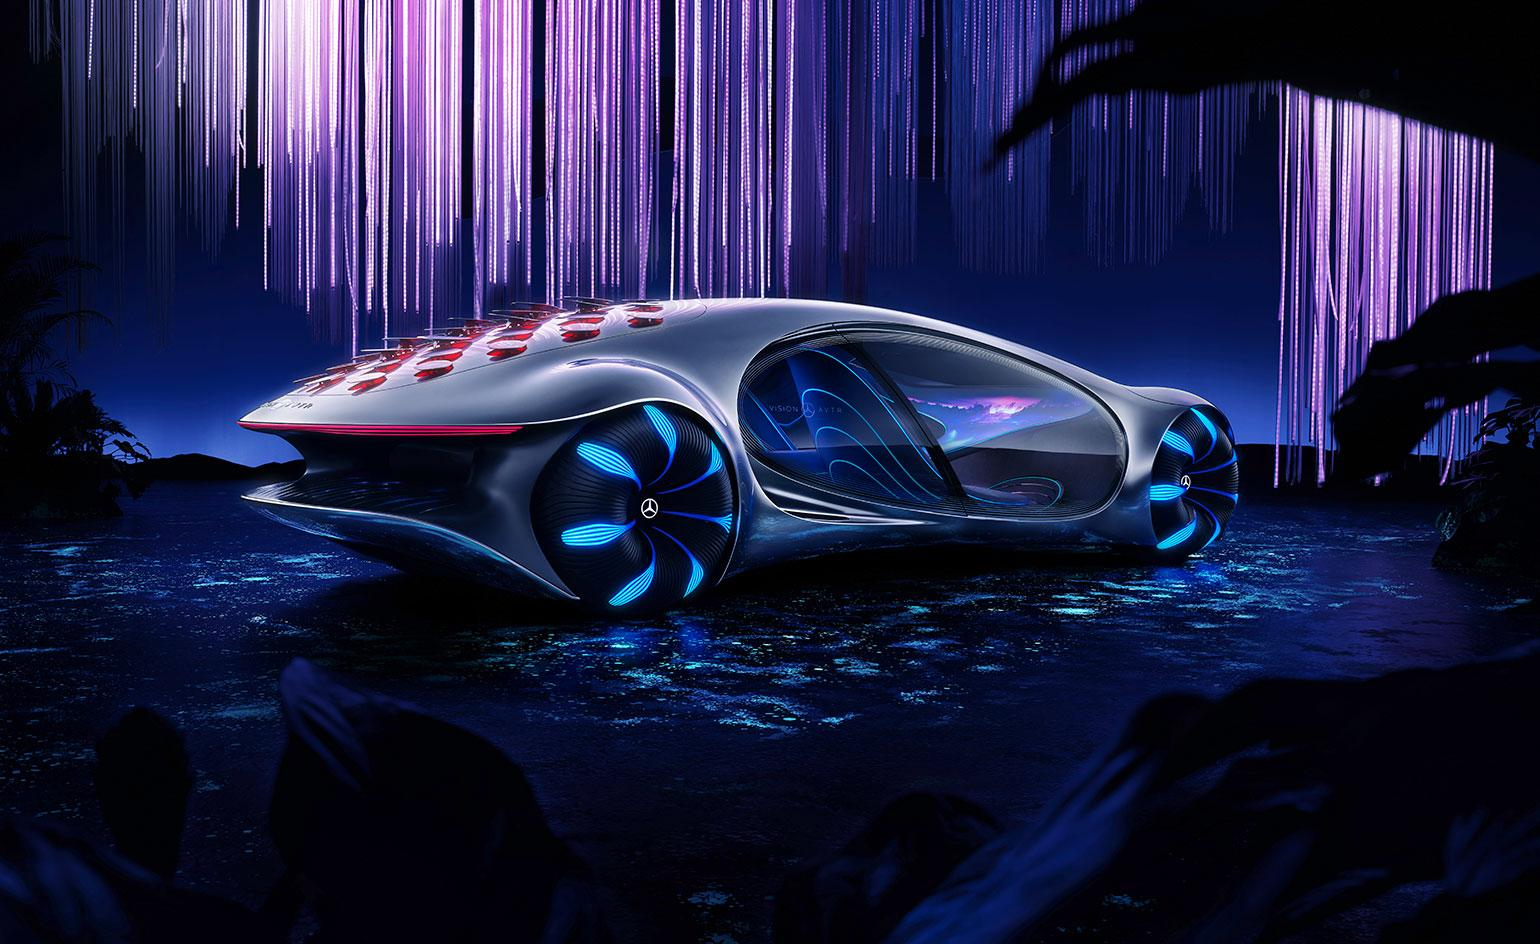 Mercedes teams up with the film makers of Avatar | Wallpaper*